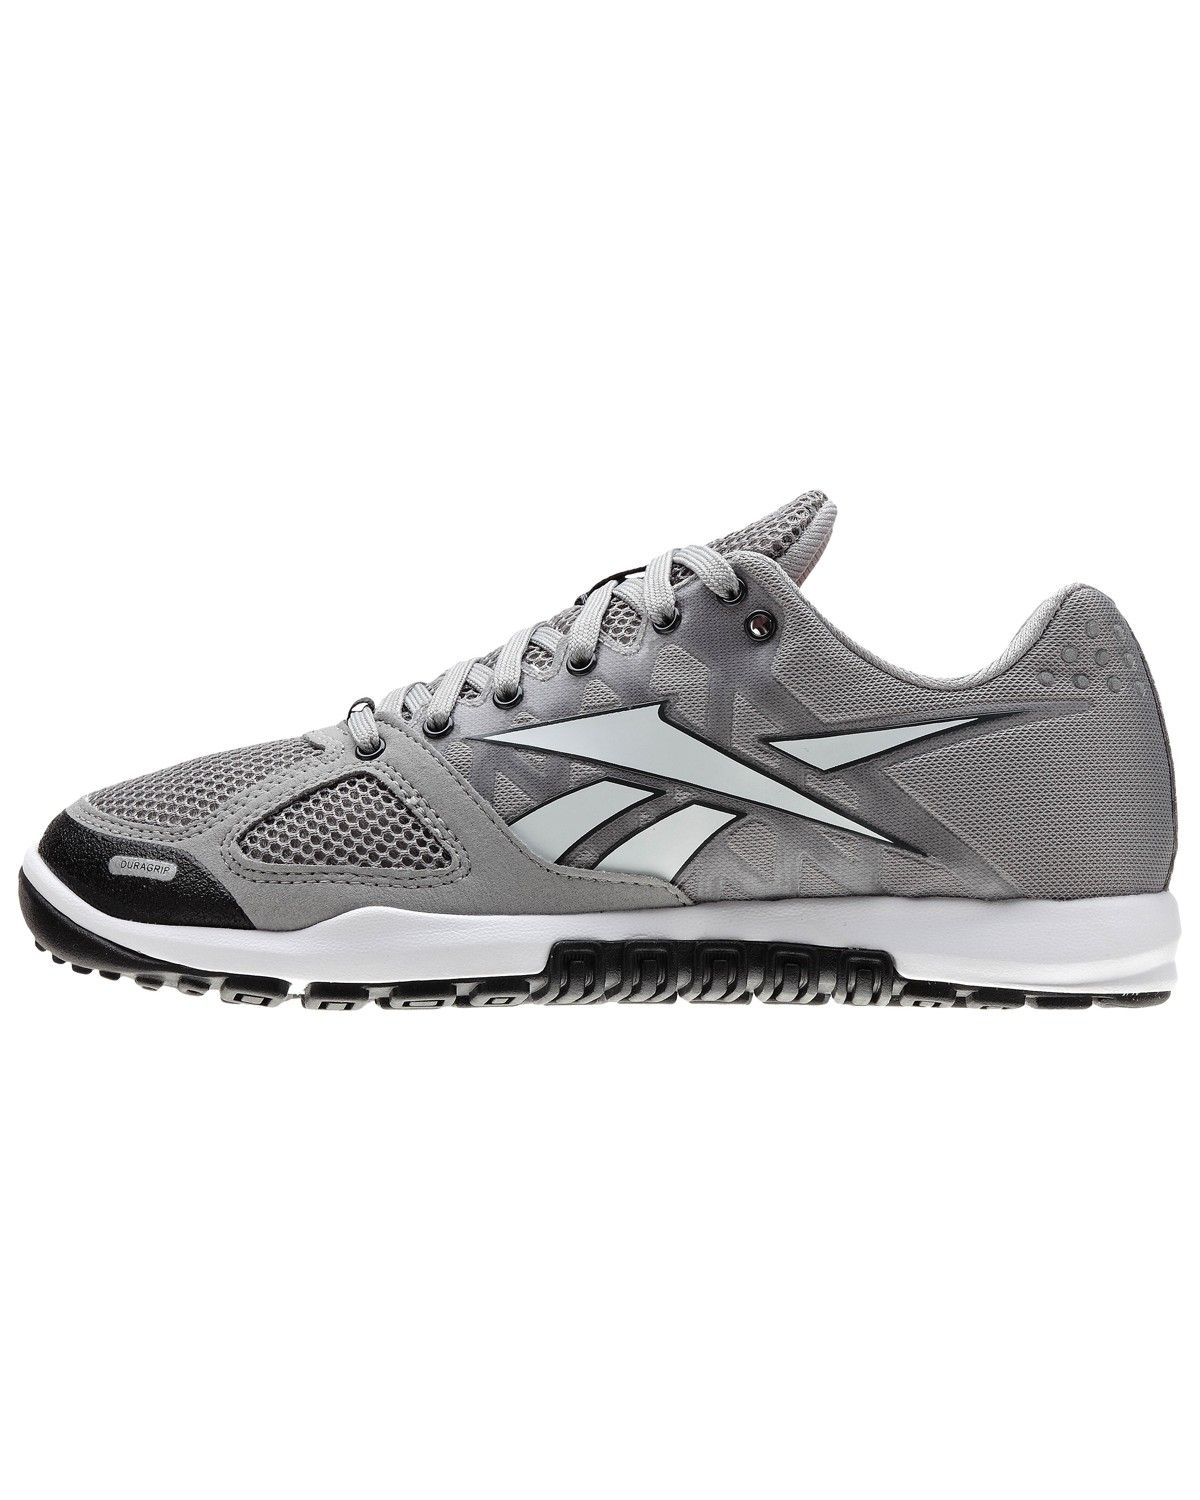 8a7fff8087fae0 Womens Reebok CrossFit Nano 3.0-ordered! Can t wait till they get ...